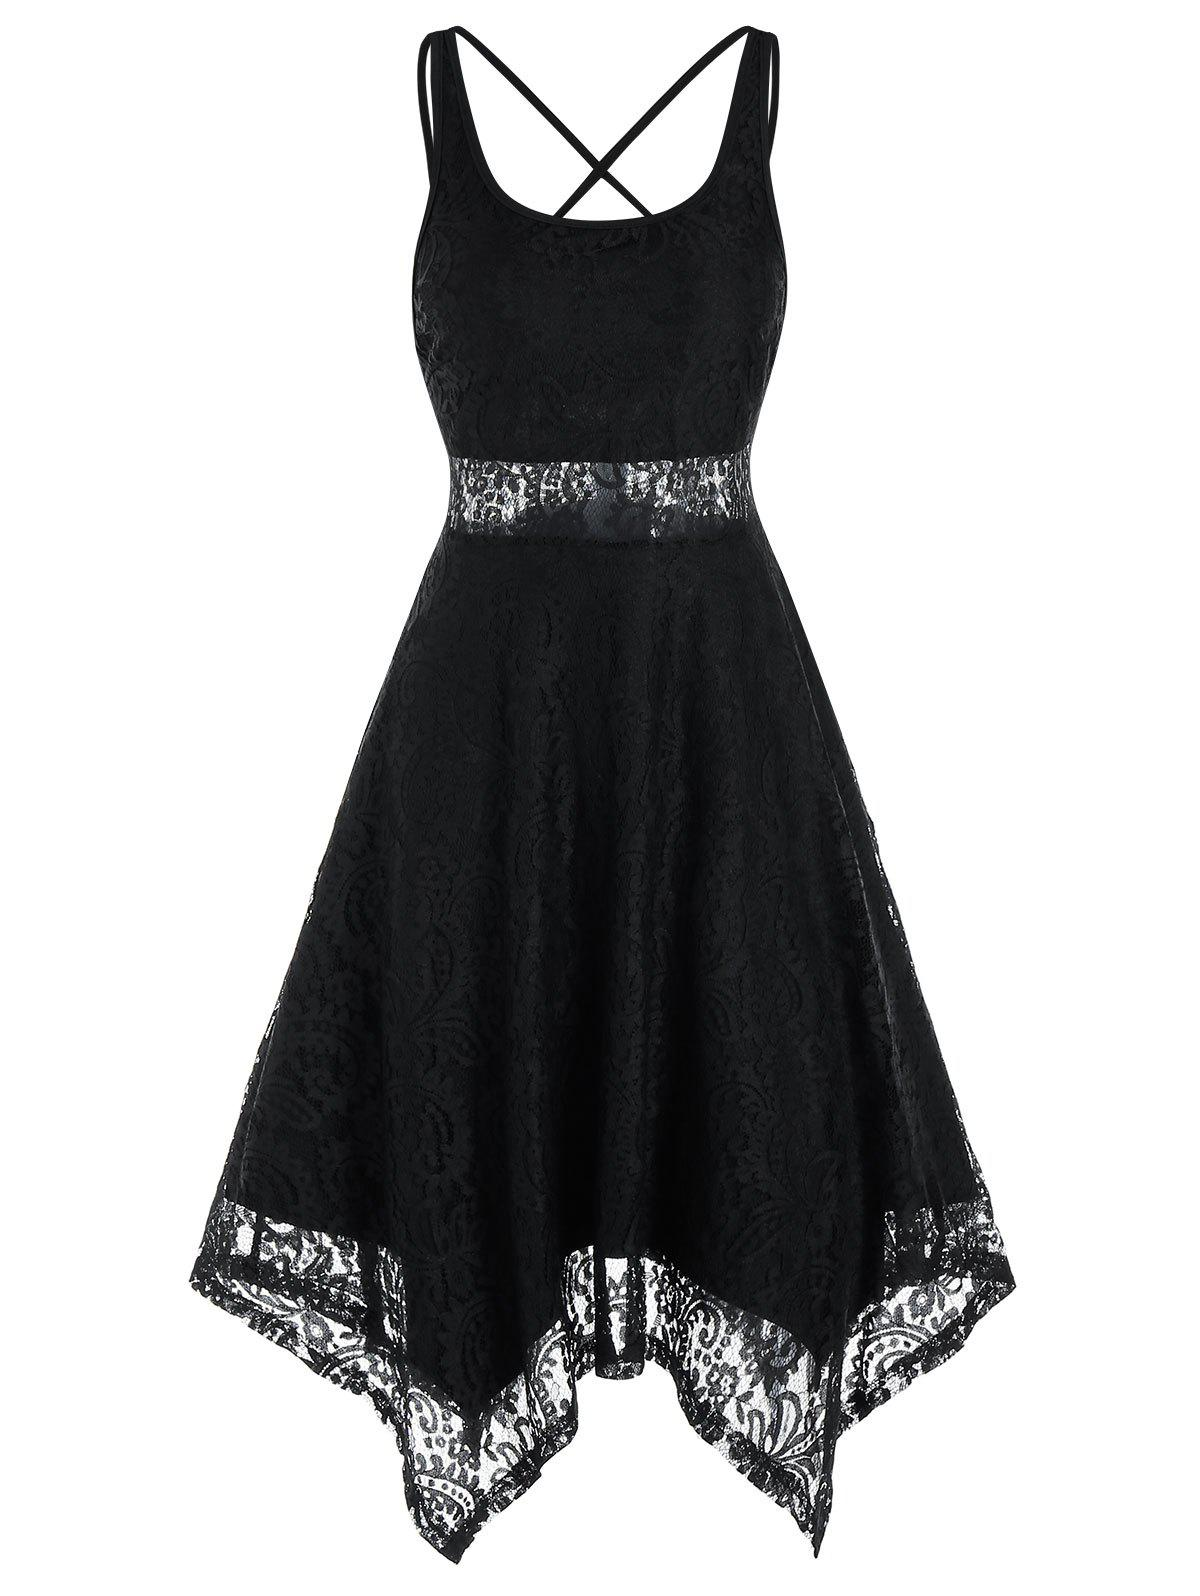 Discount Sleeveless Strappy Backless Handkerchief Lace Dress